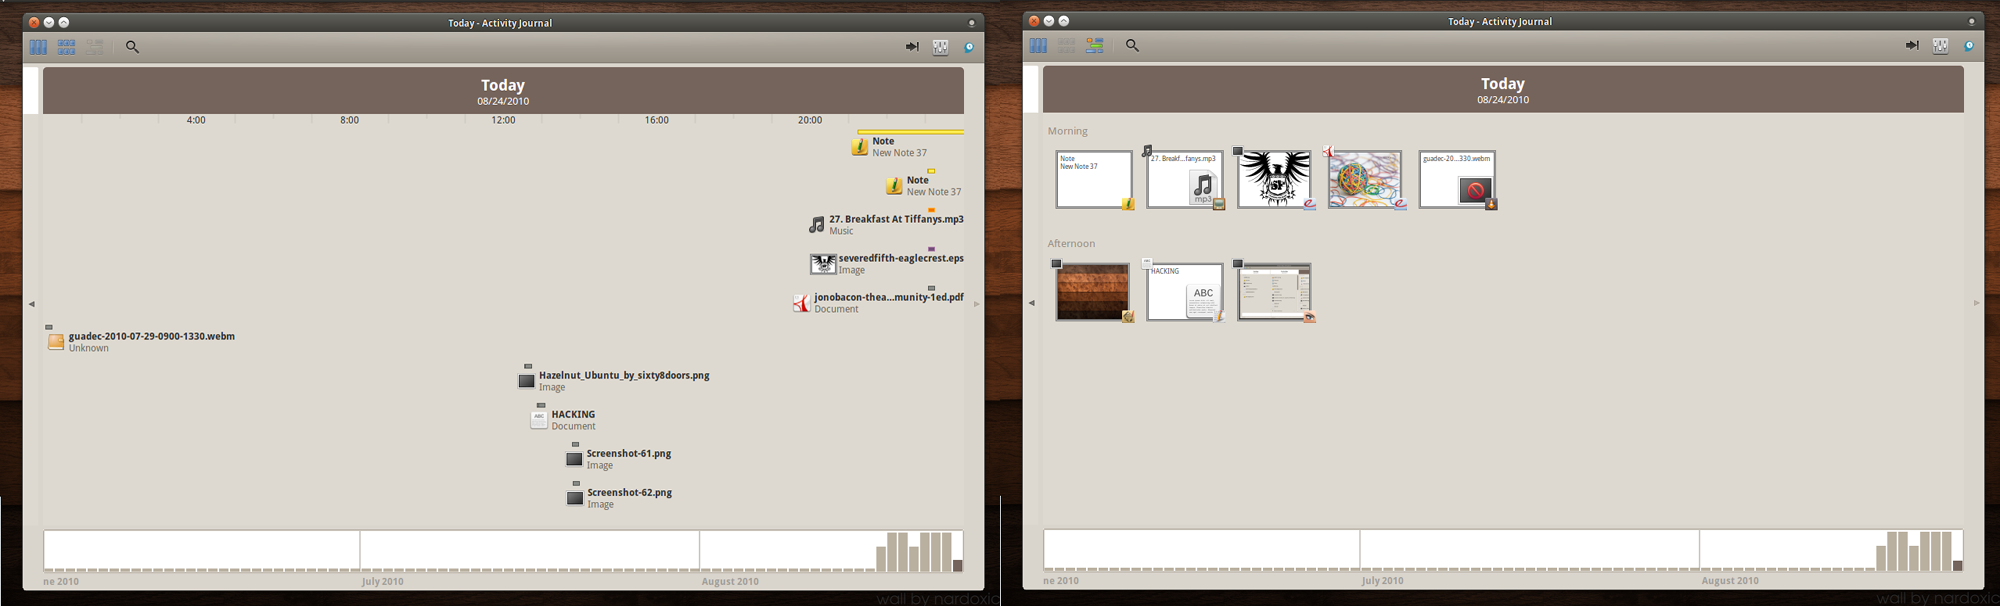 Intervals & Thumbs Views of GNOME Activity Journal